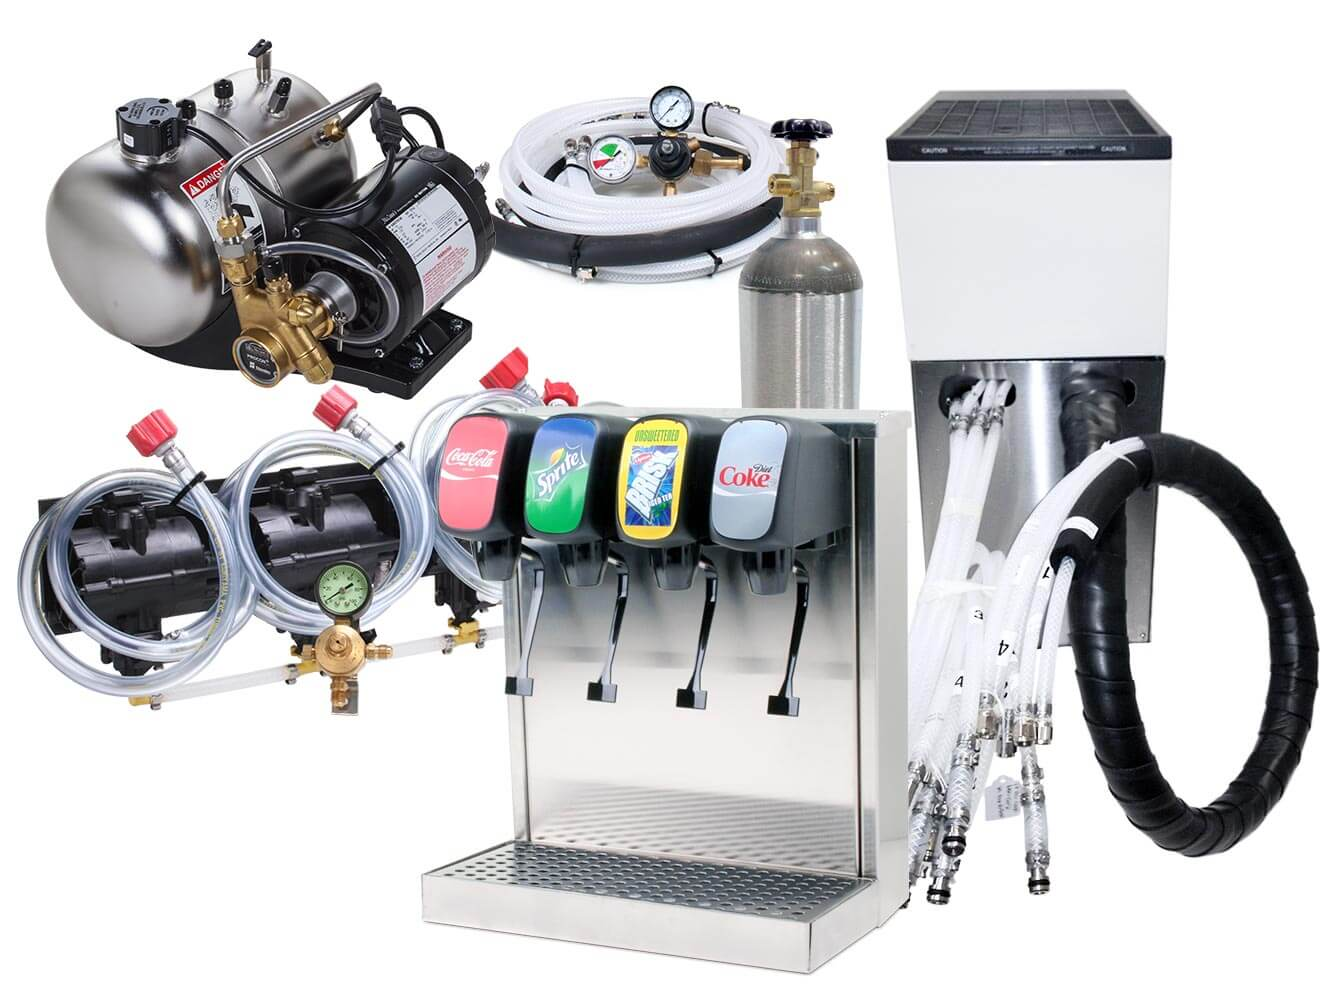 4-Flavor Tower Soda Fountain System with Remote Cooler (NEW)